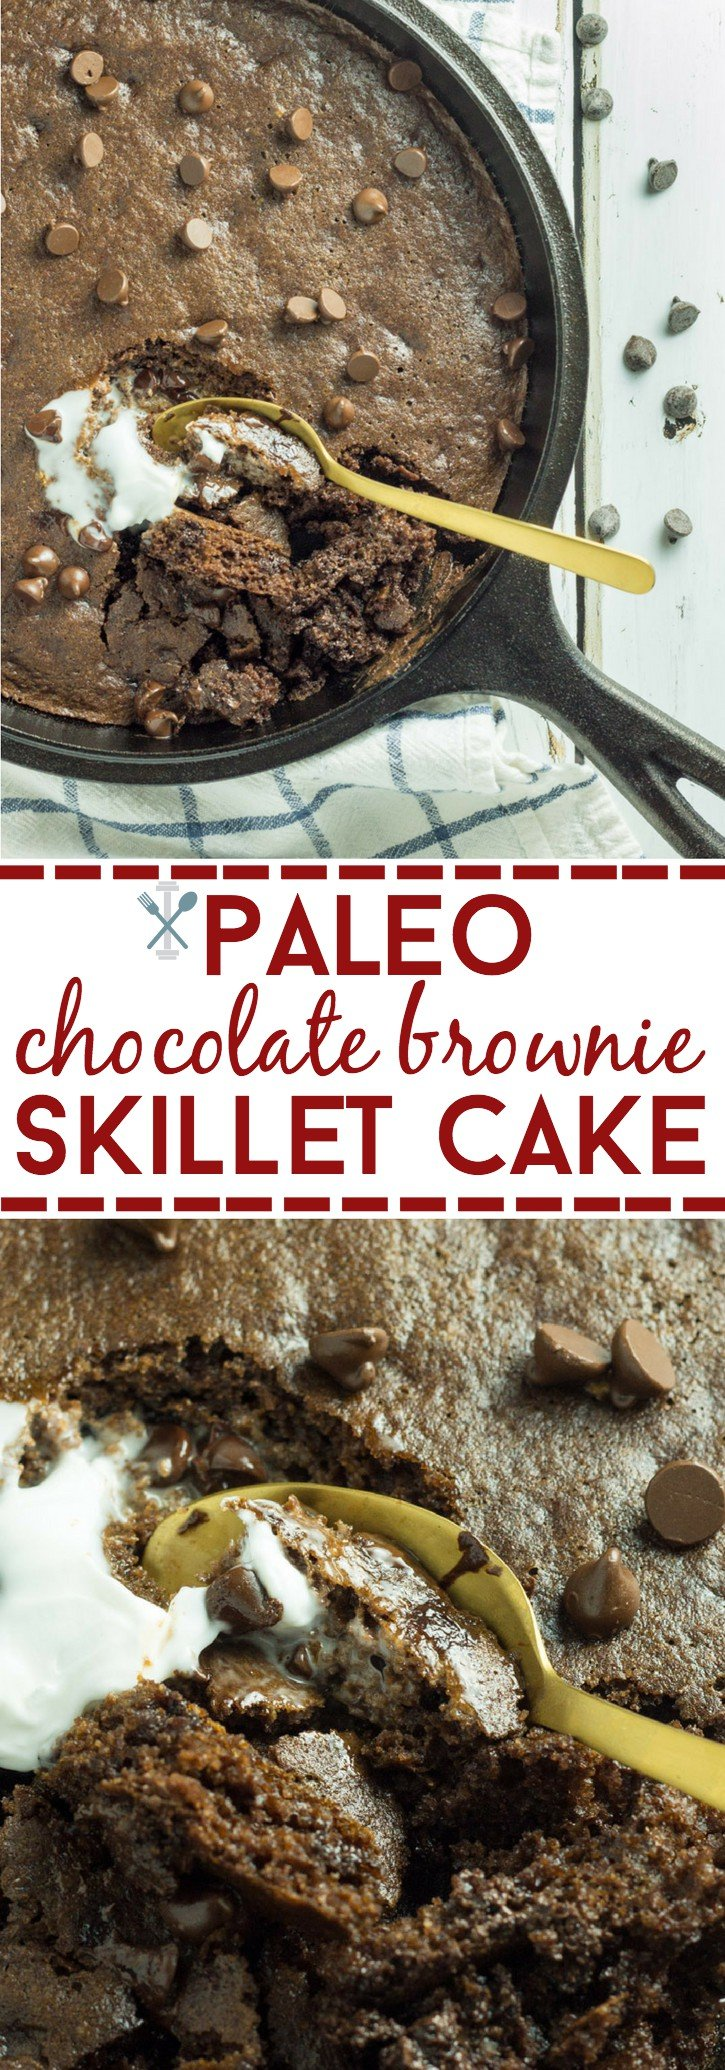 A gluten-free, dairy-free, paleo chocolate skillet cake made in under 30 minutes. Naturally sweetened and totally decadent!